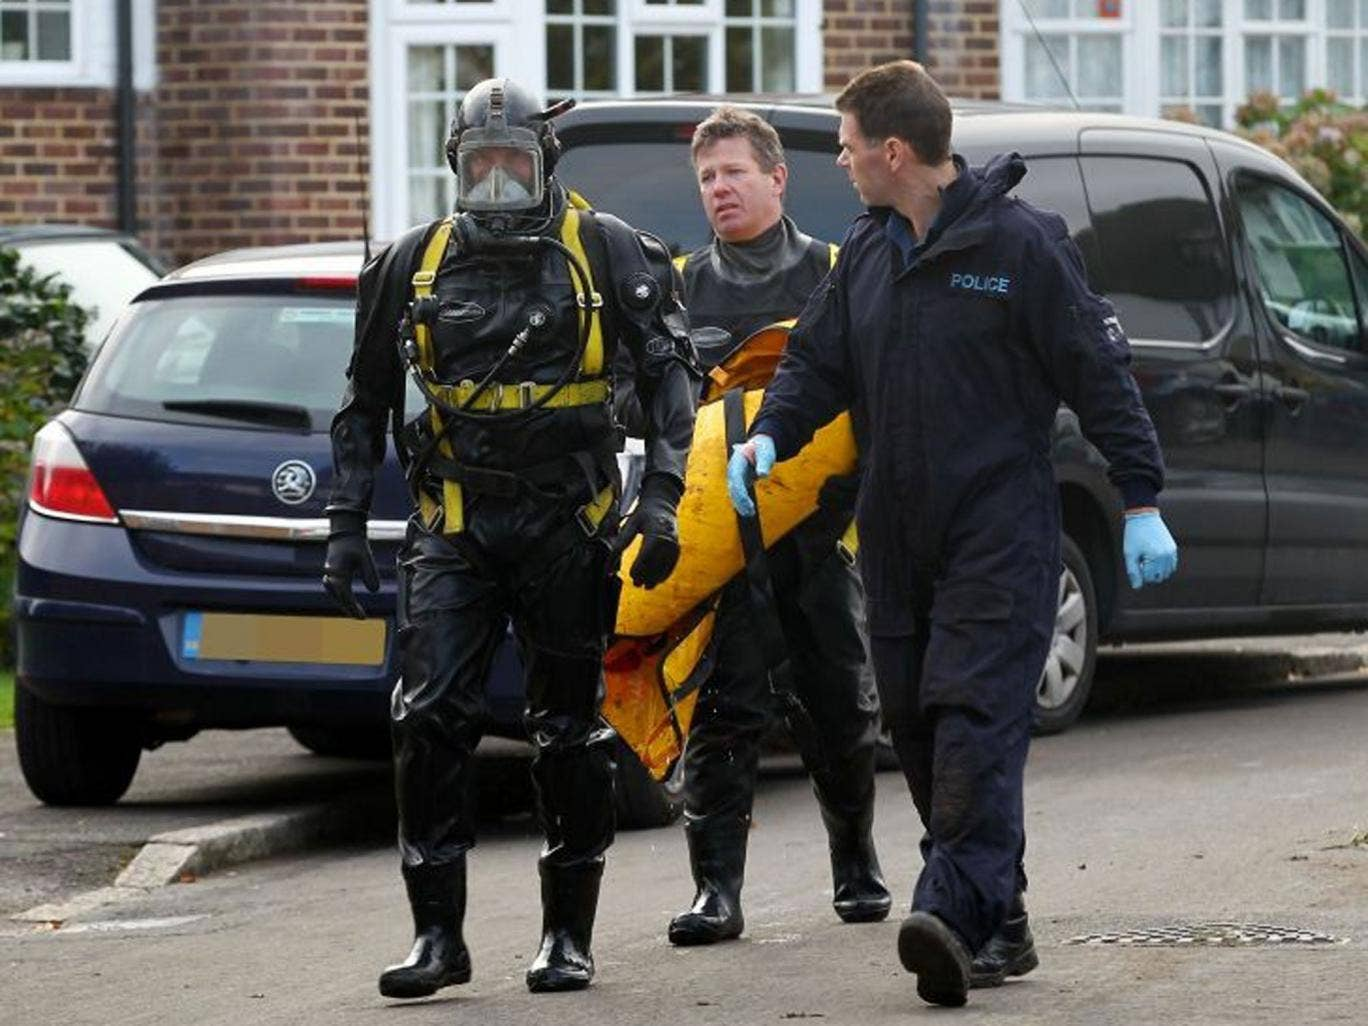 Officers from the Underwater and Confined Space Search Team during the recovery operation of a body that was discovered in a well in Surrey